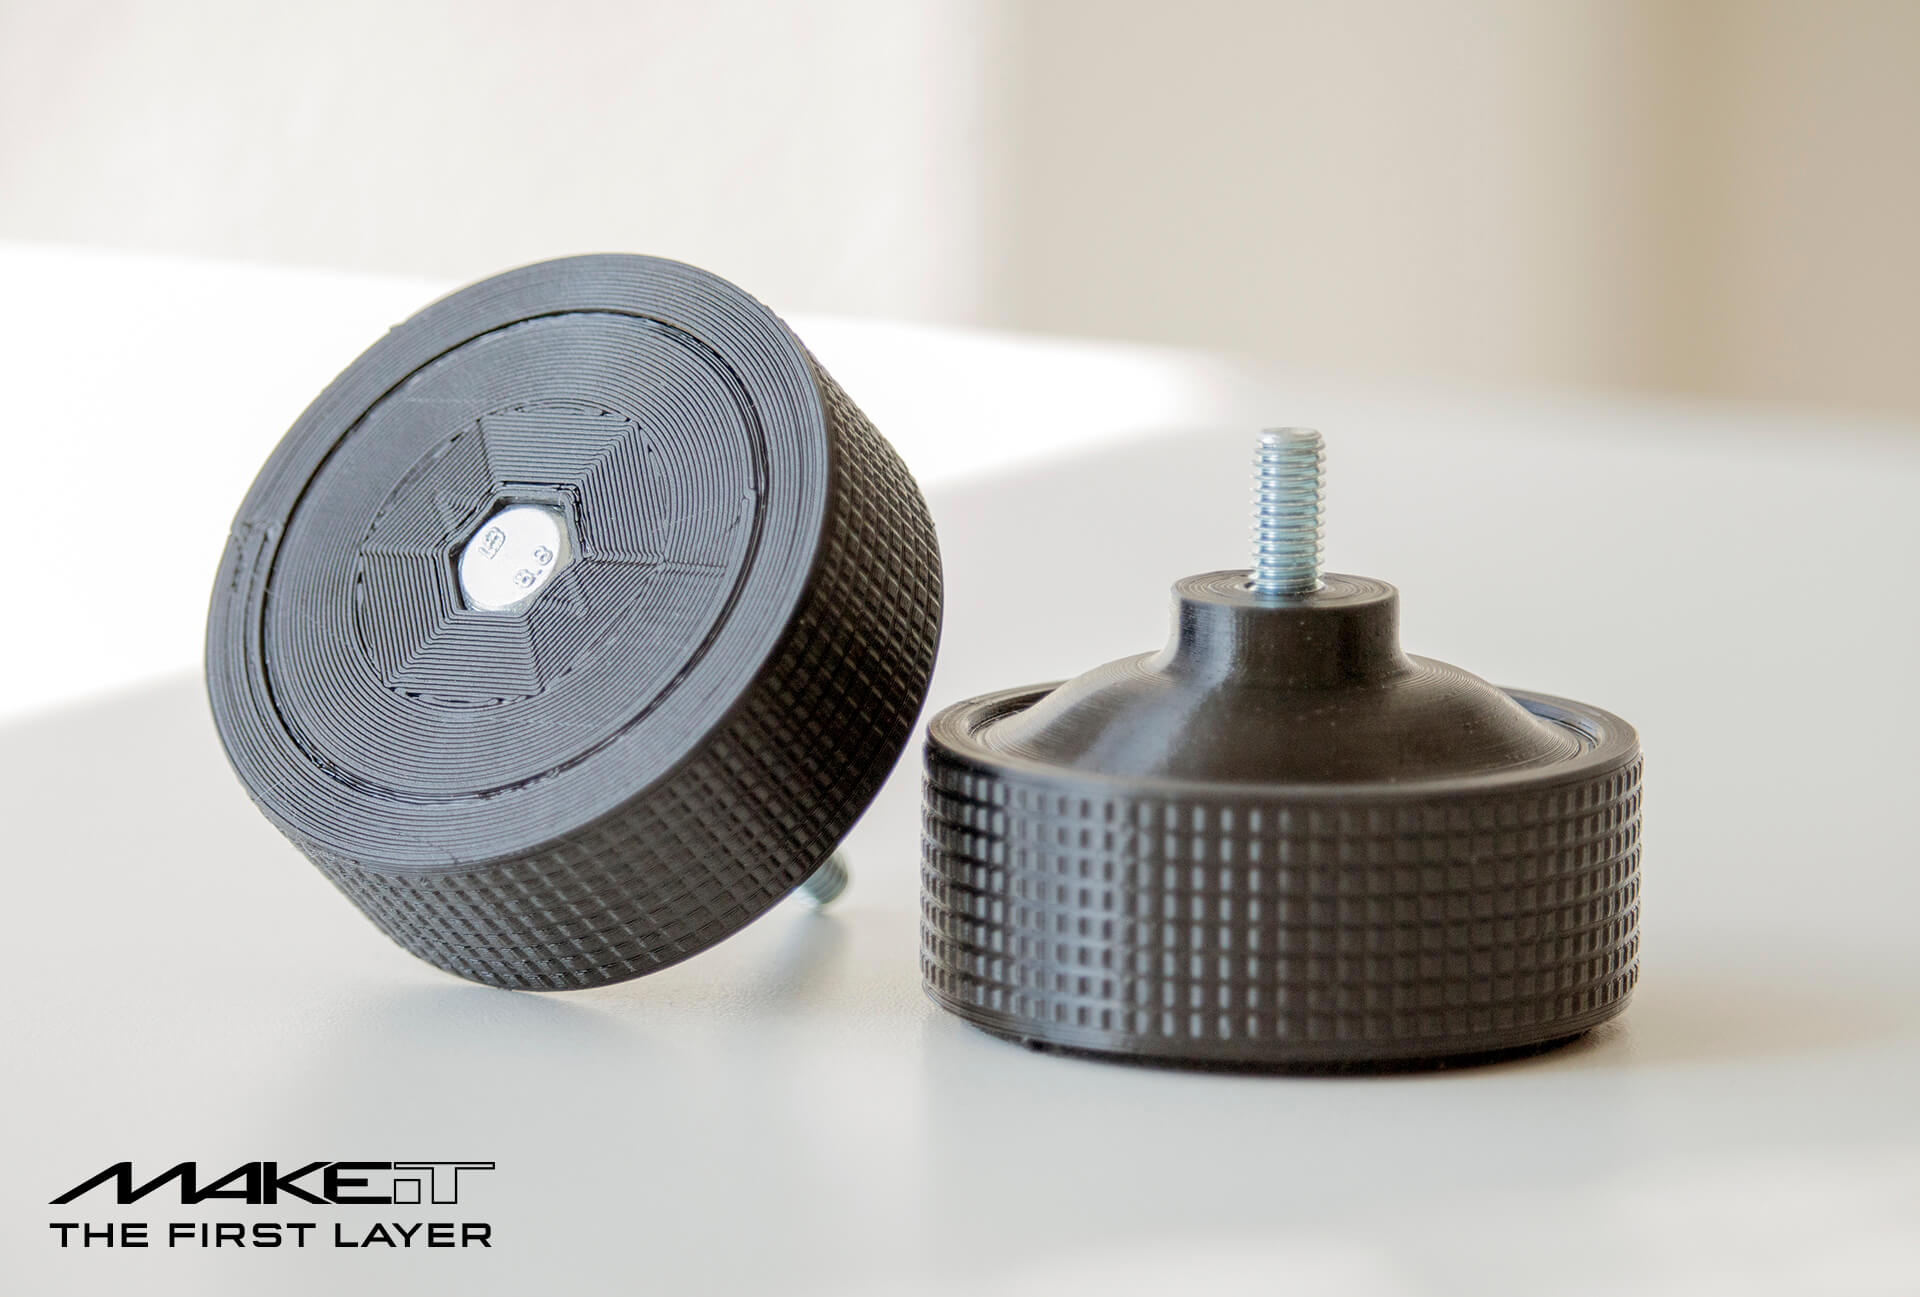 High resolution 3D printed replacement parts